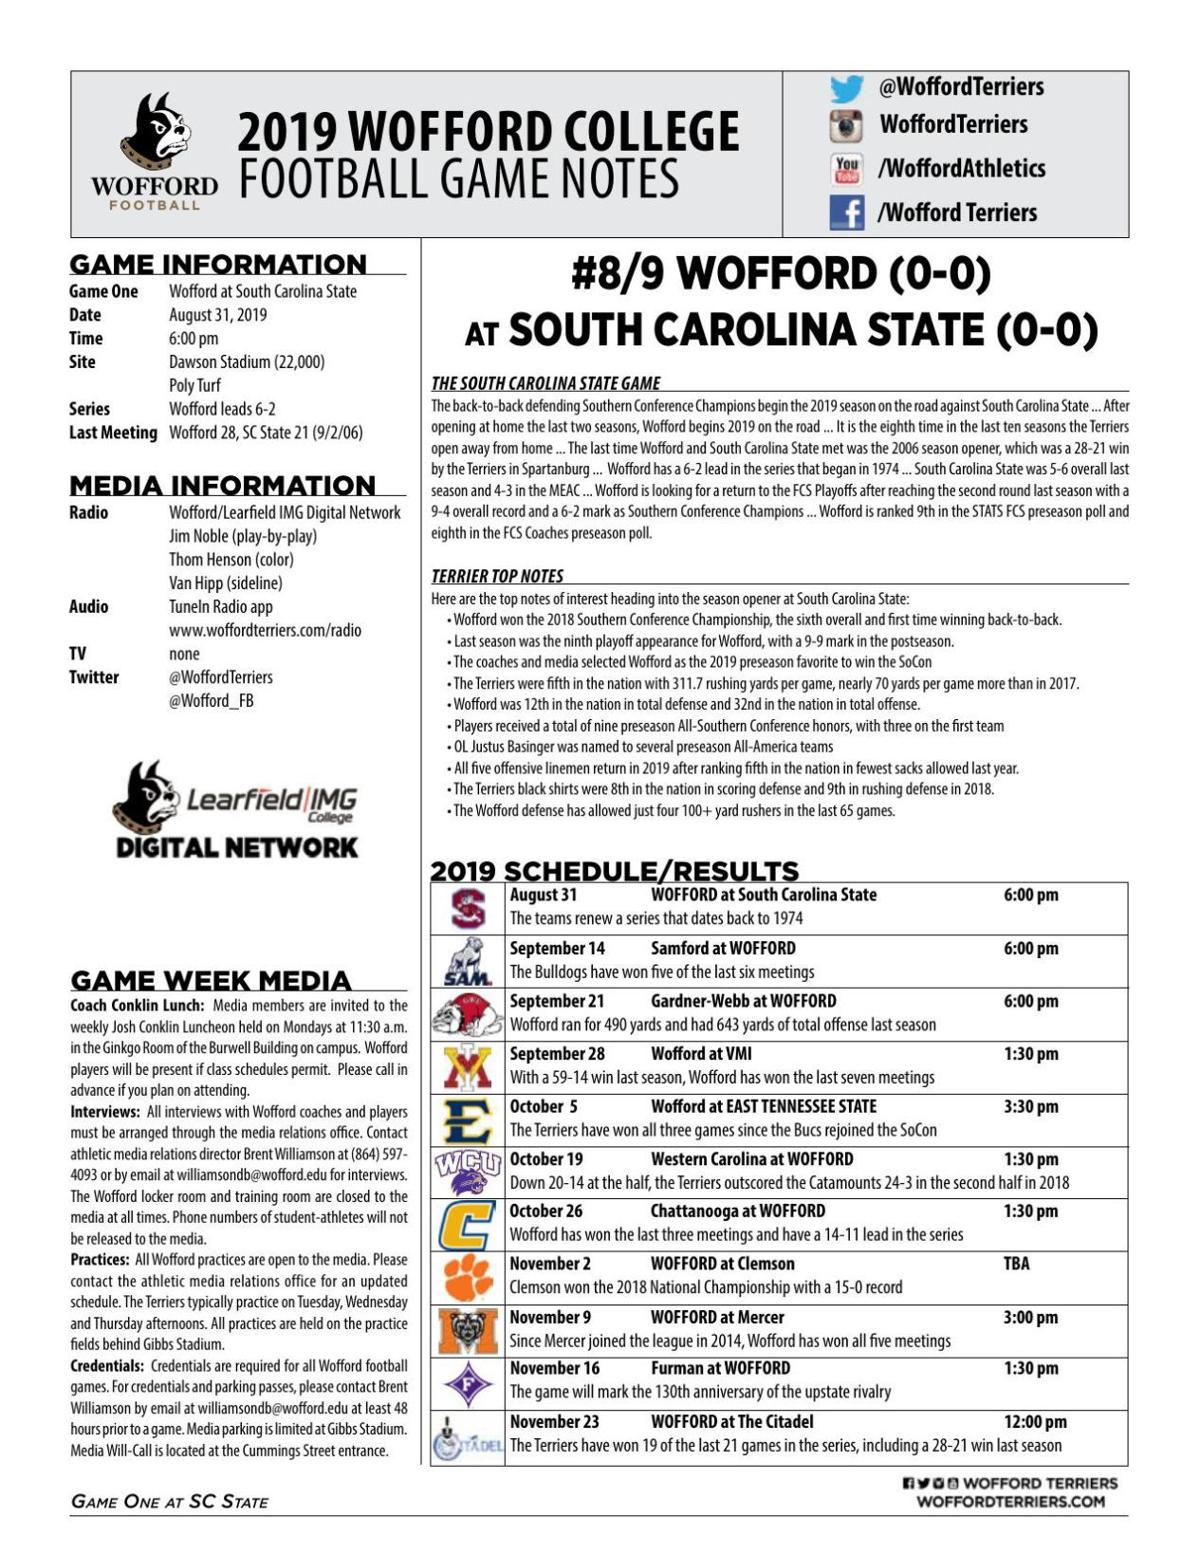 Wofford vs. S.C. State game notes